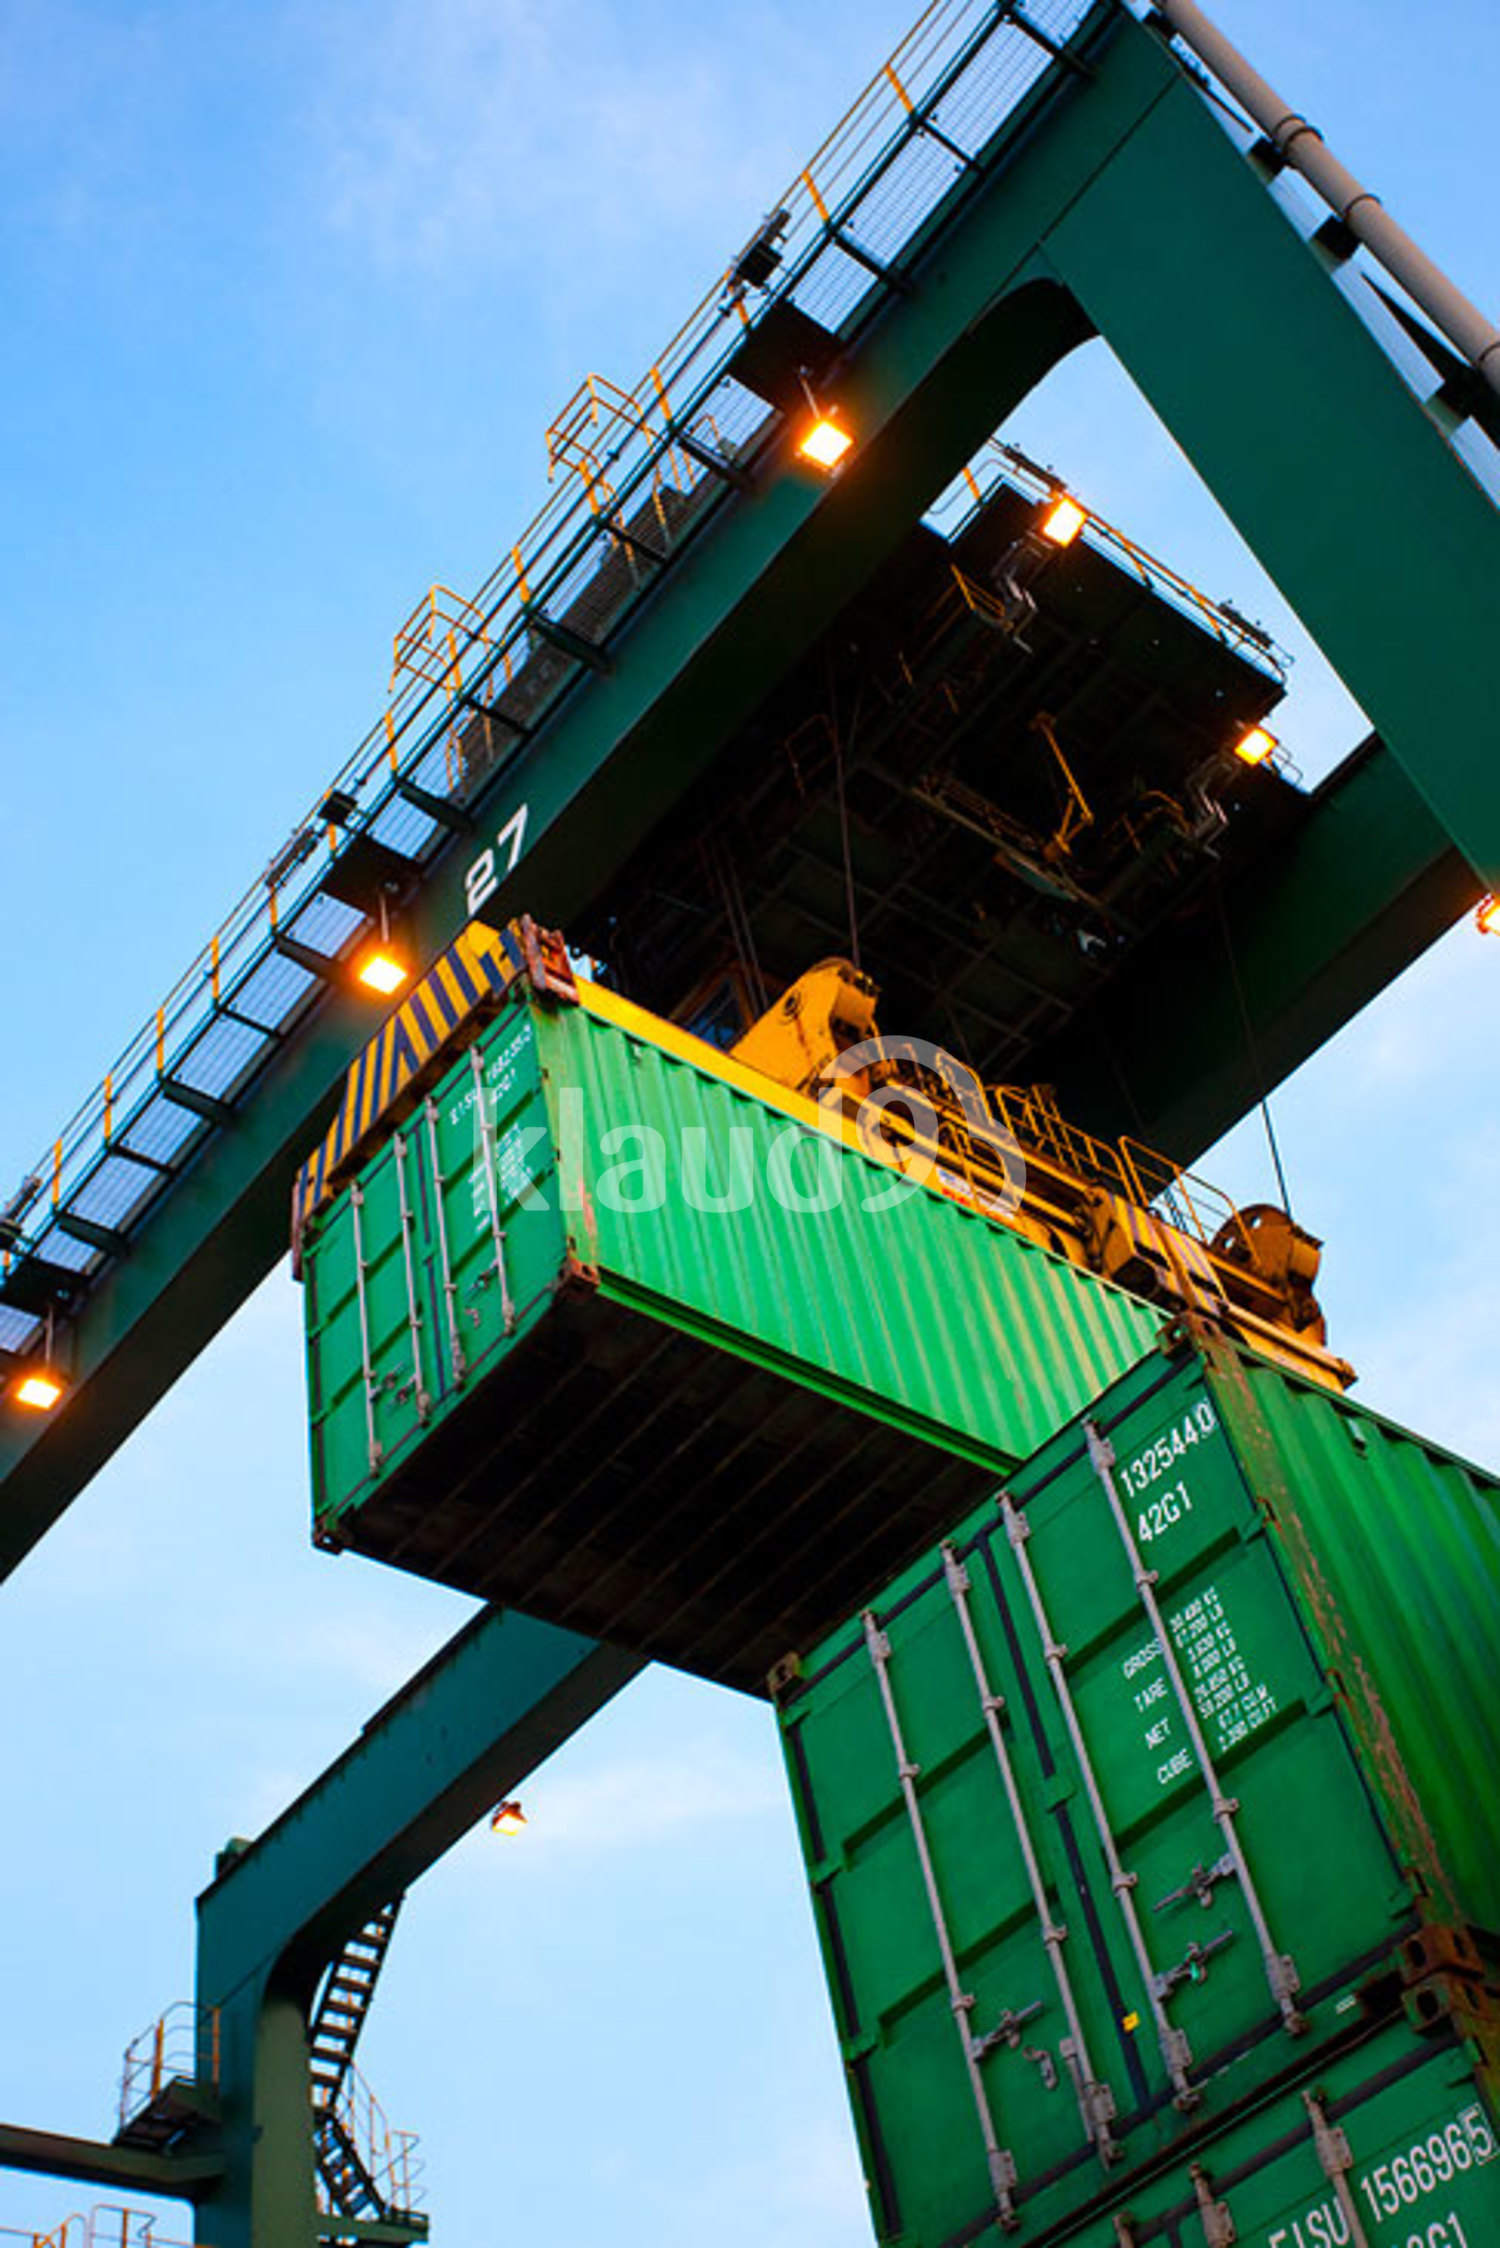 Low angle view of a crane and cargo container at a shipping port